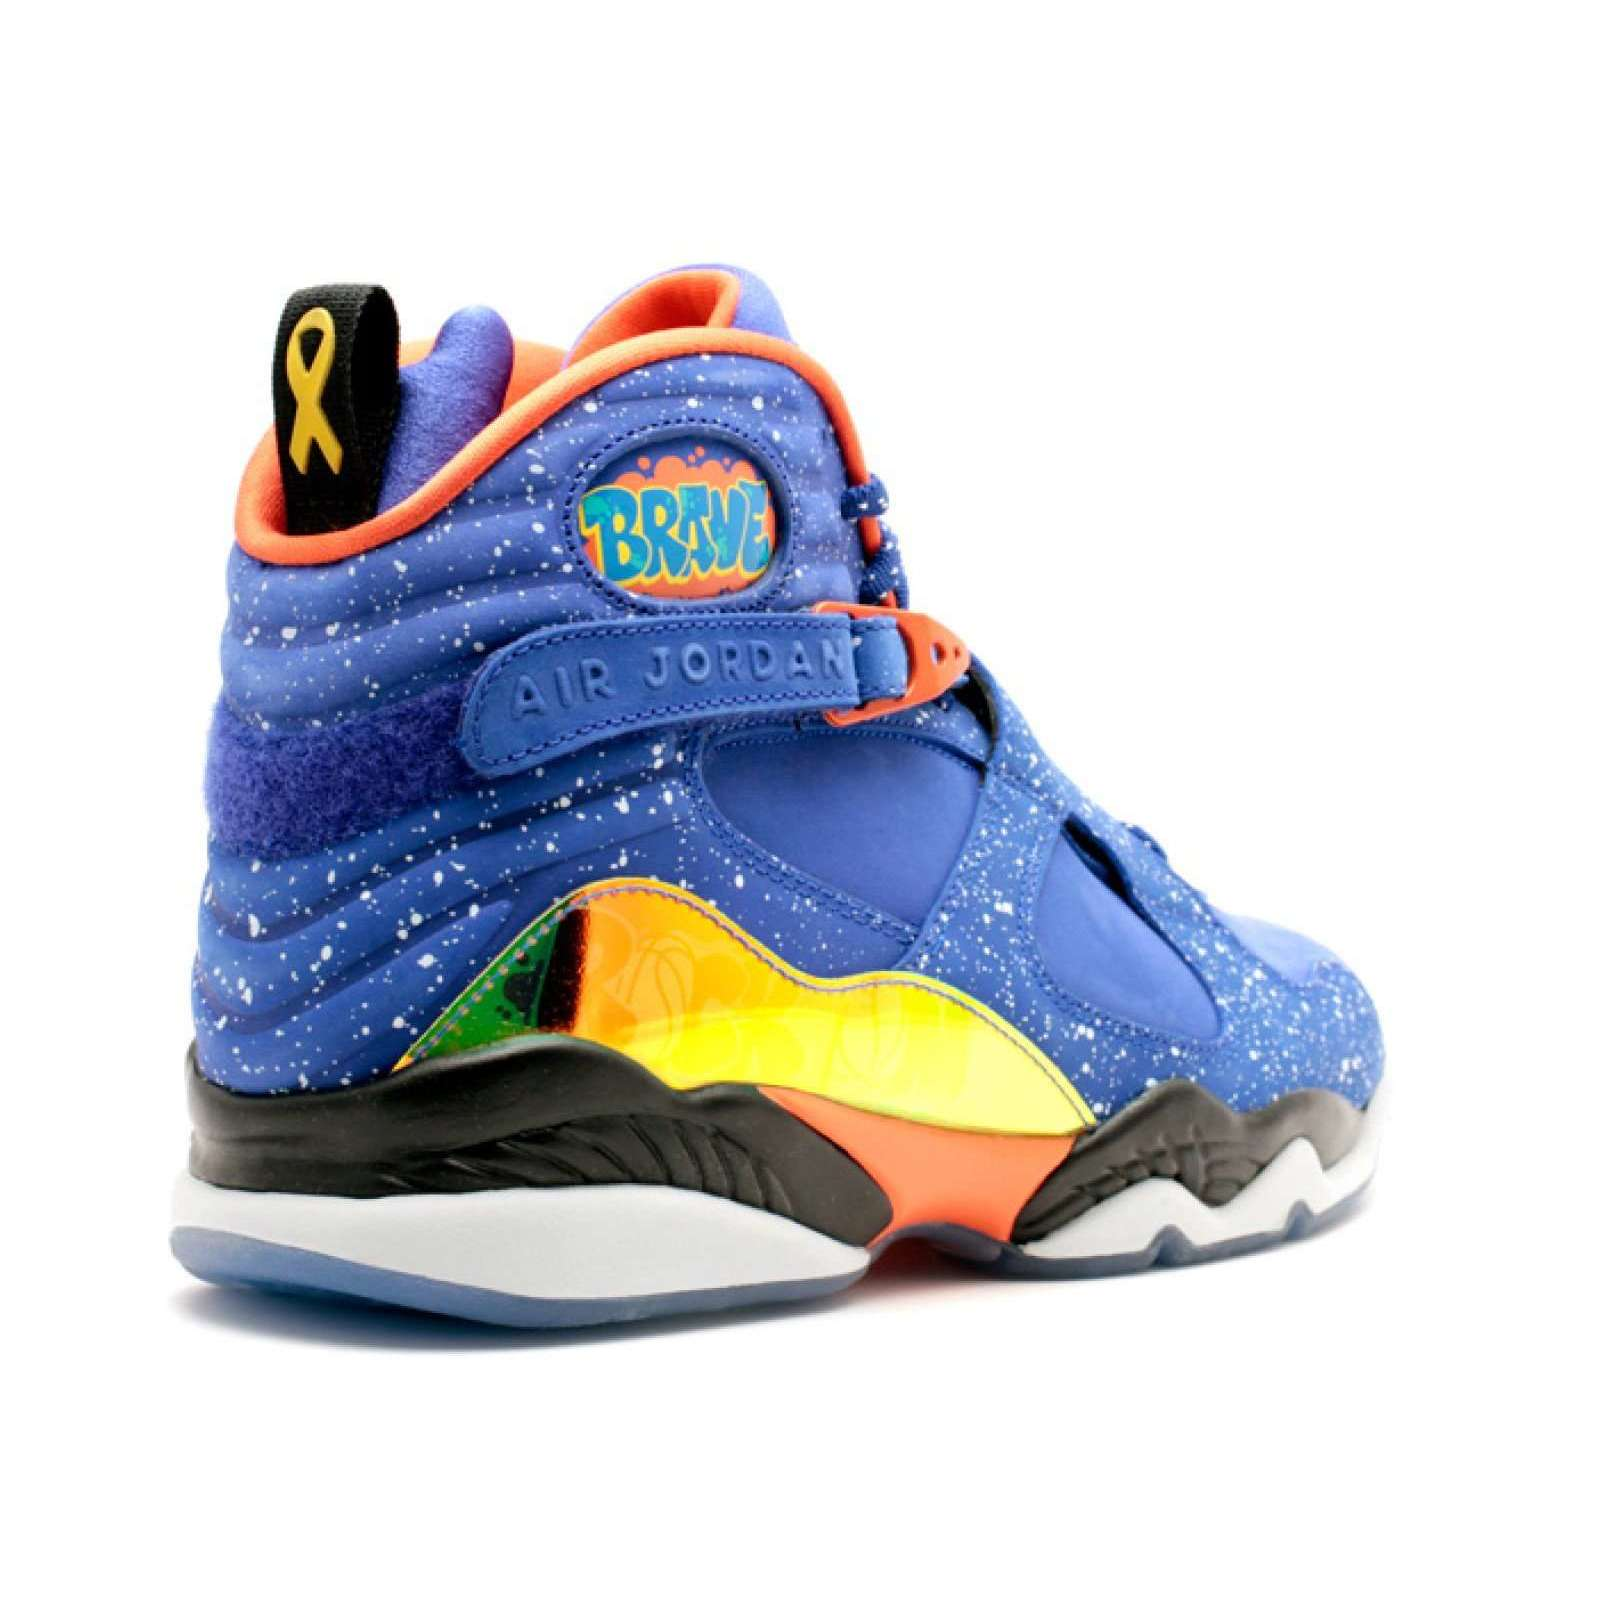 991f4416a234 Nike Air Jordan 8 Retro DB Doernbecher – Kick Pickz - The Best Shoes